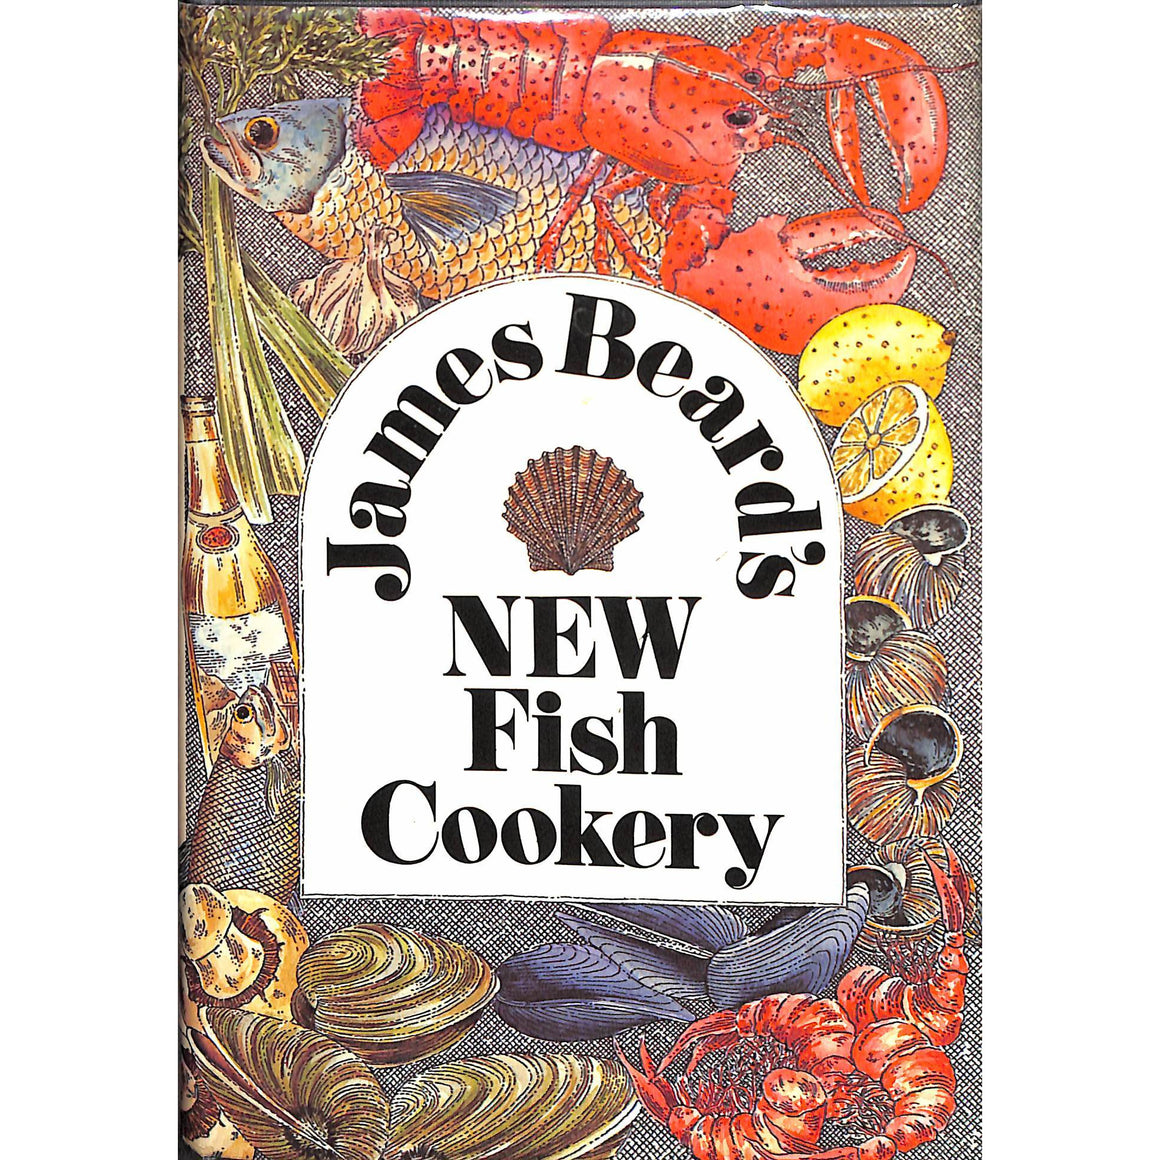 New Fish Cookery